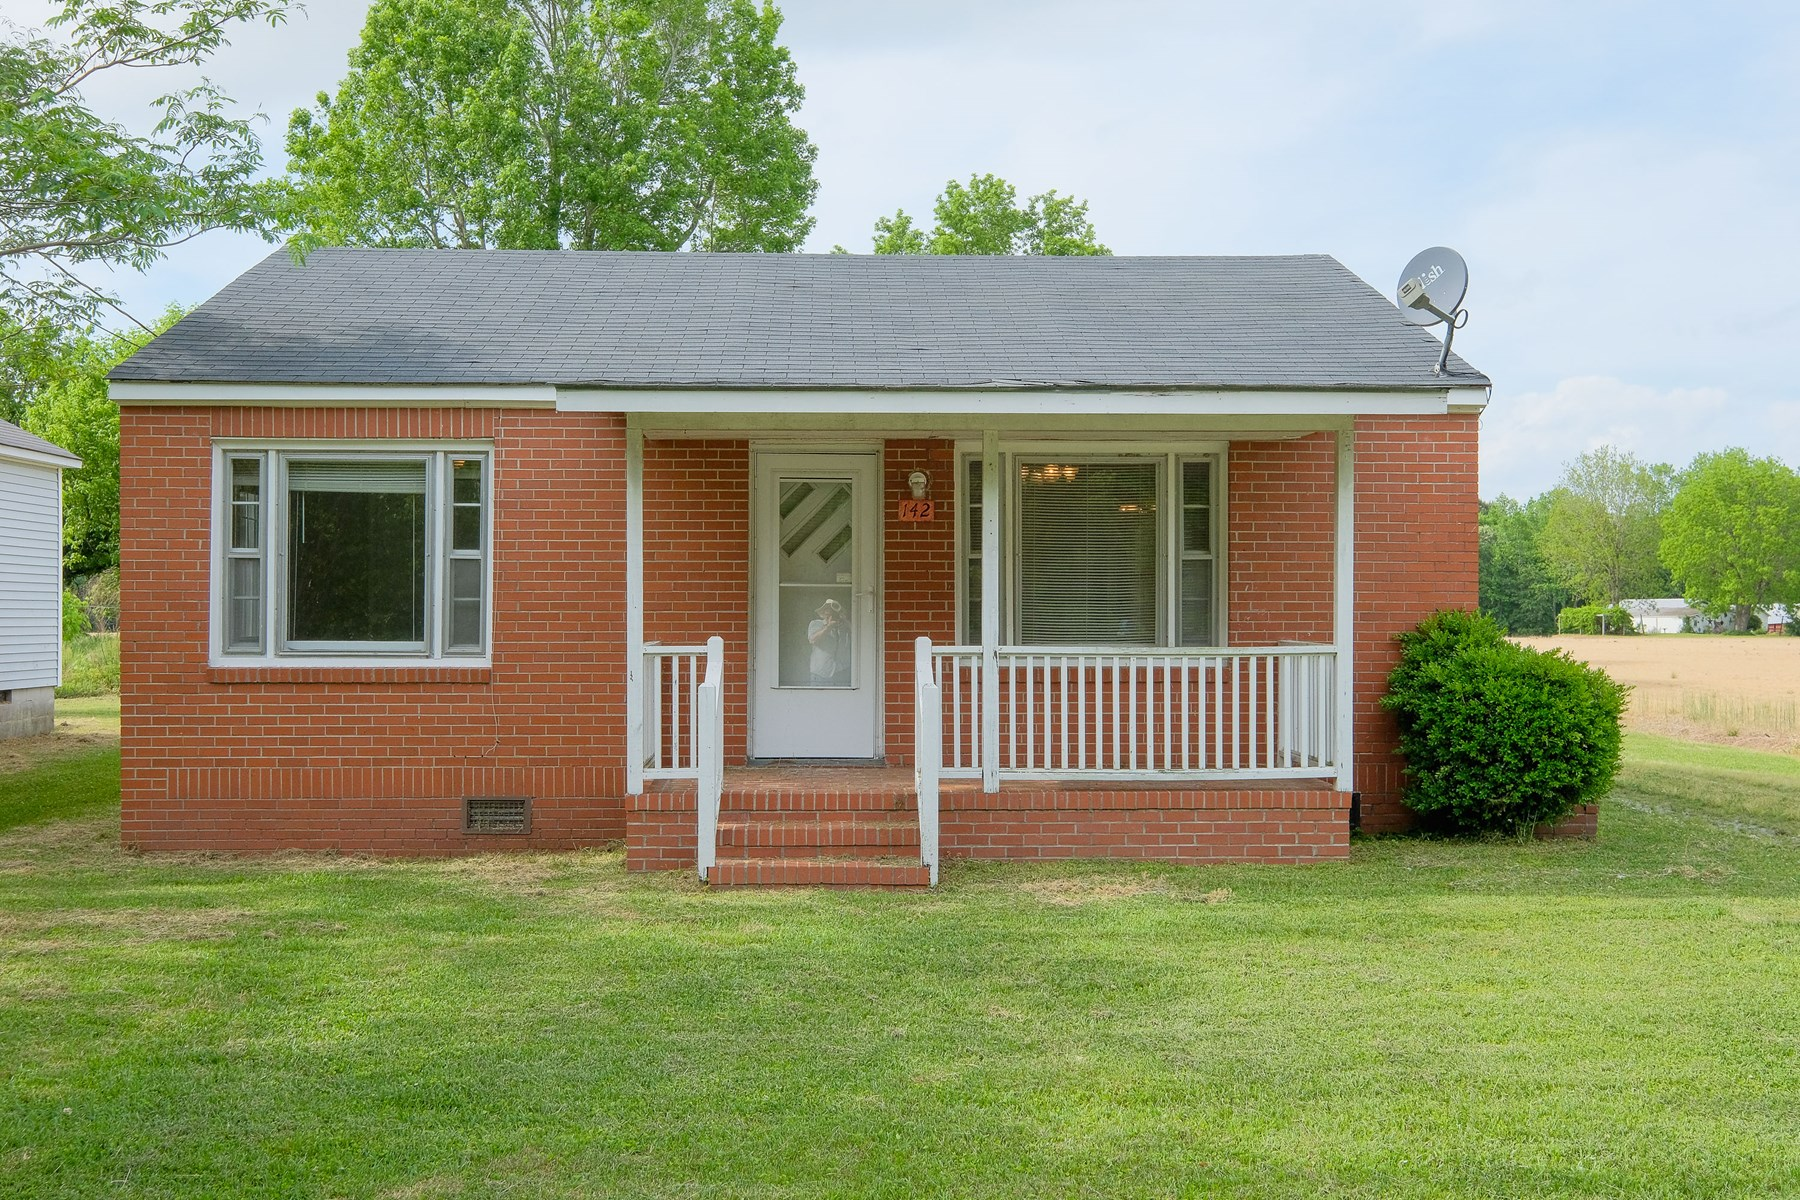 142 MEXICO RD EDENTON, NC-2 BEDROOM 1 BATH HOME